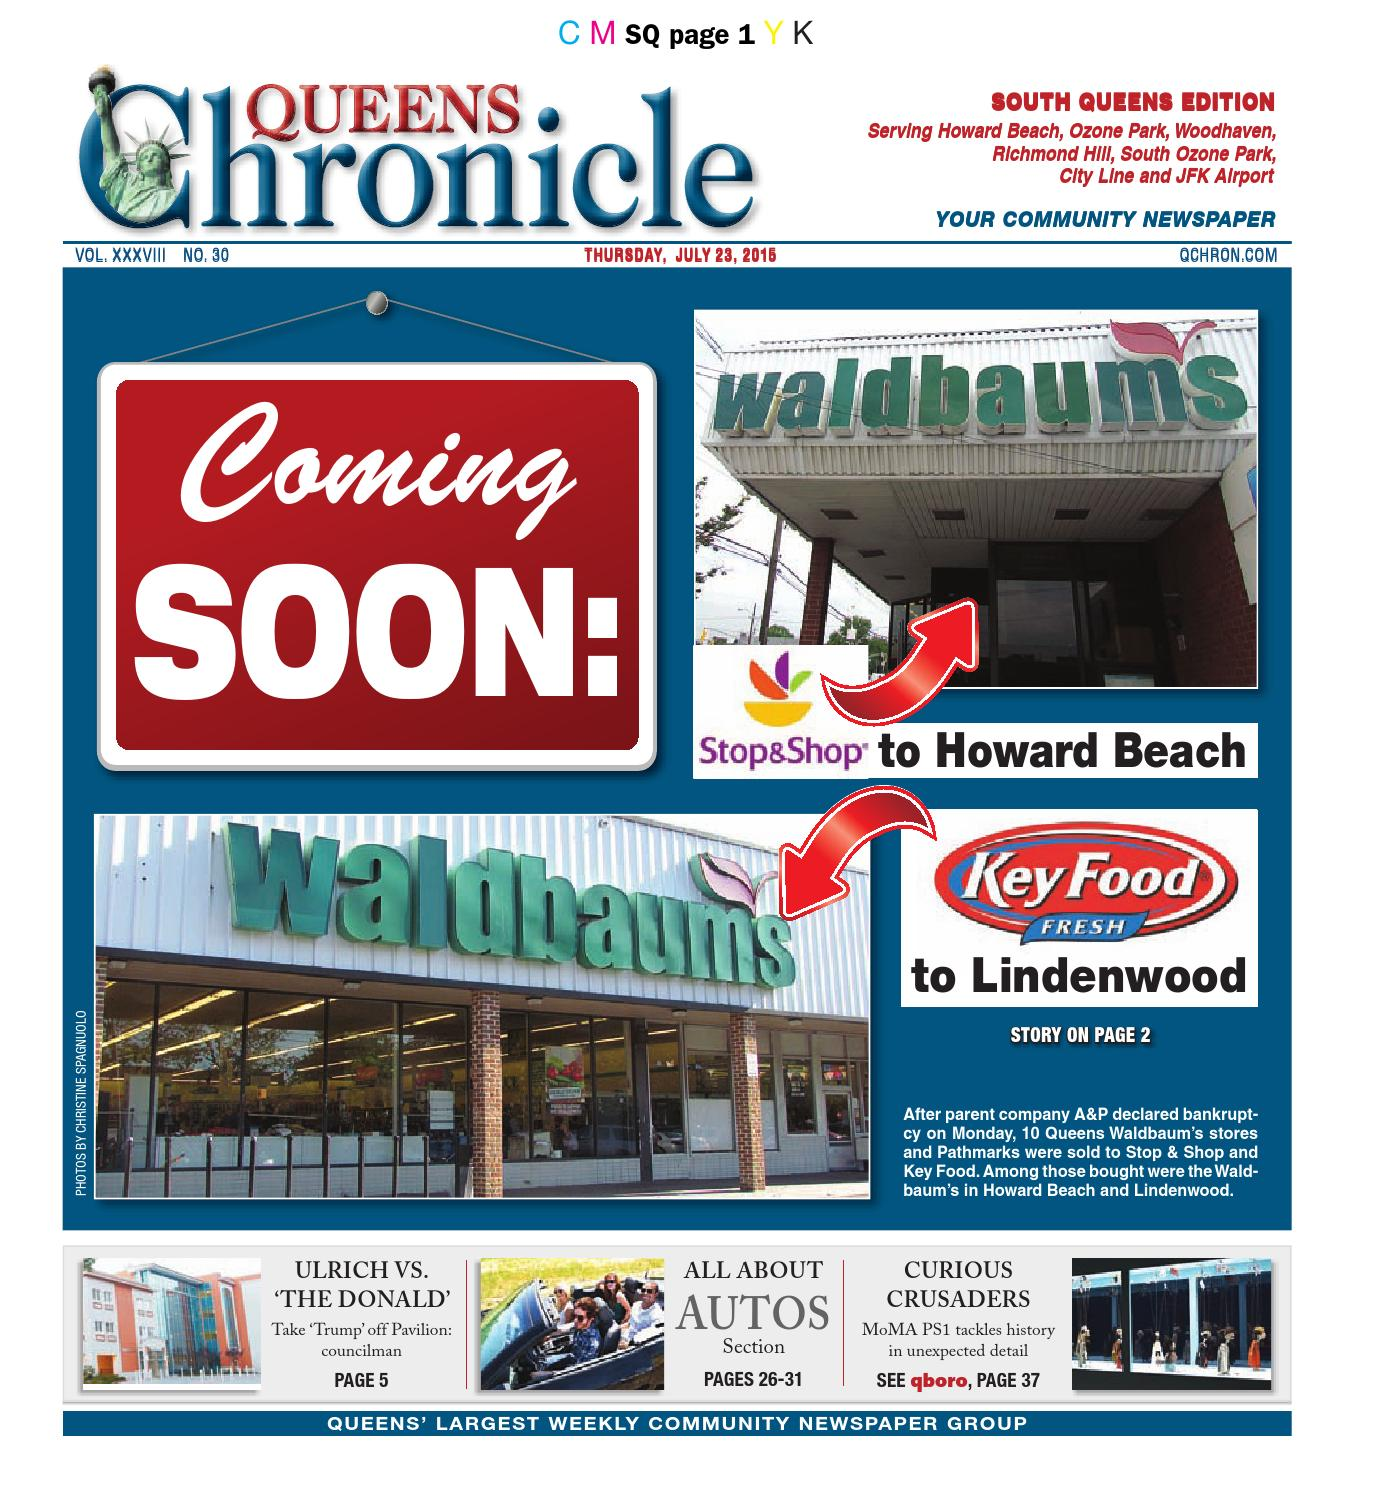 Queens Chronicle South Edition 07-23-15 by Queens Chronicle